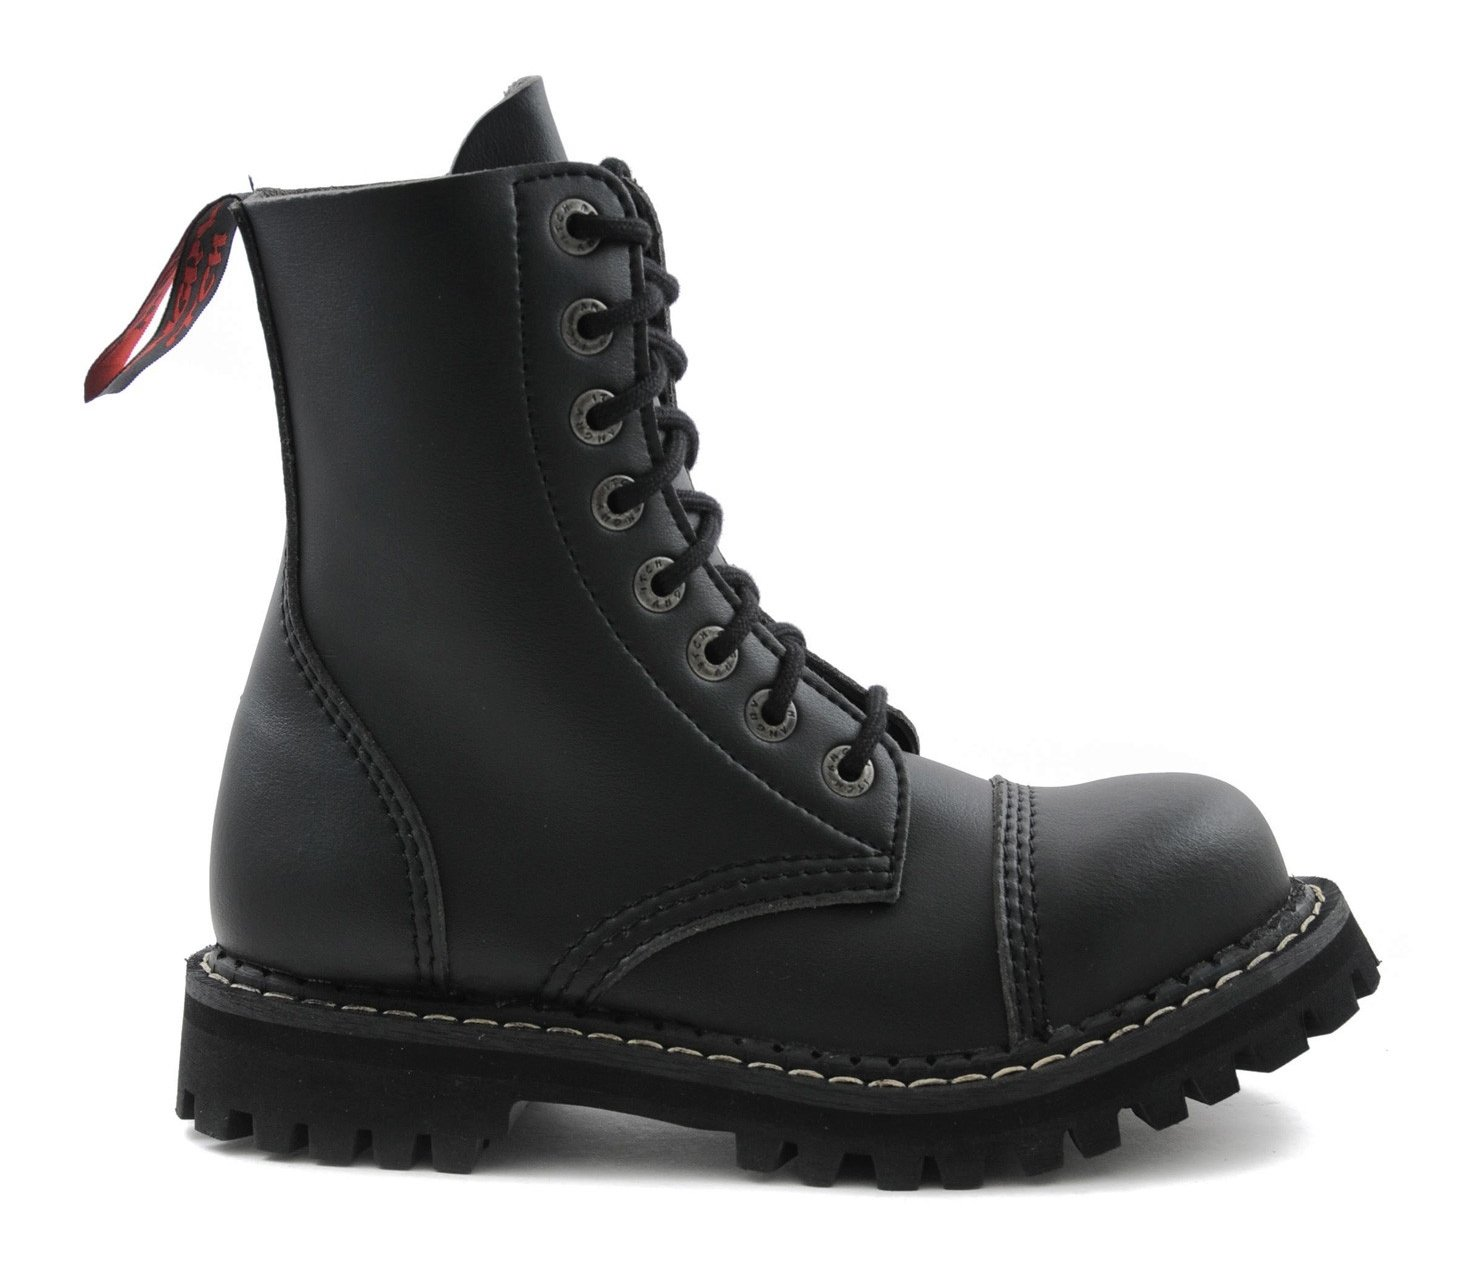 Mit Eu Ranger Schwarze Made 8 Stiefel Army Vegane 36 Itch Stahlkappe In 48 Loch Punk Armee Angry Gothic EIbeDY29WH